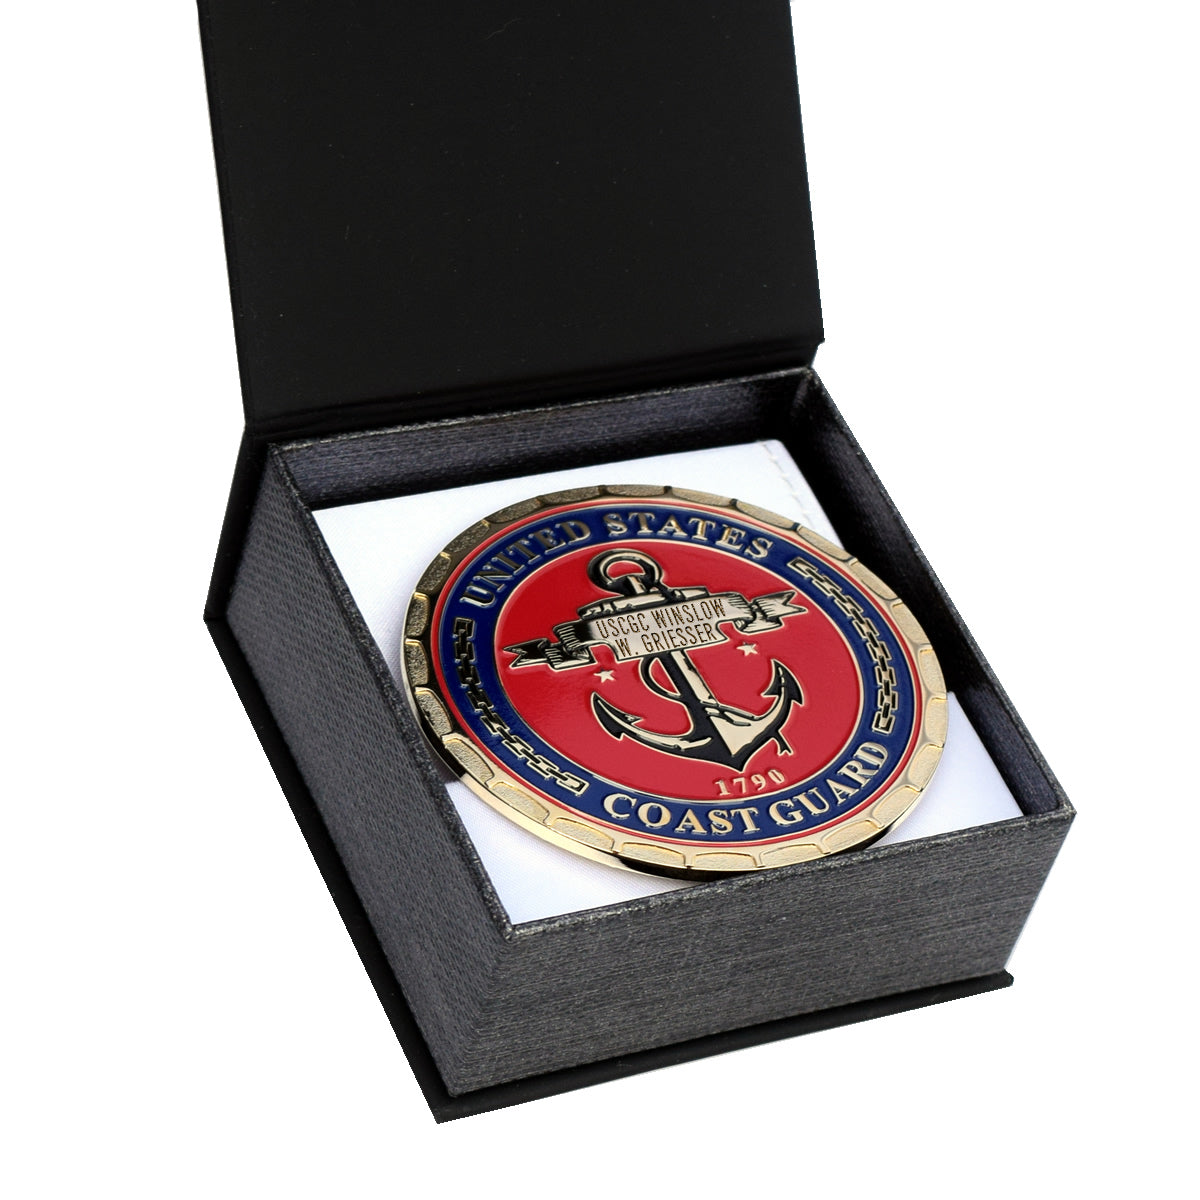 USCGC WINSLOW W. GRIESSER WPC-1116 COAST GUARD PLAQUE